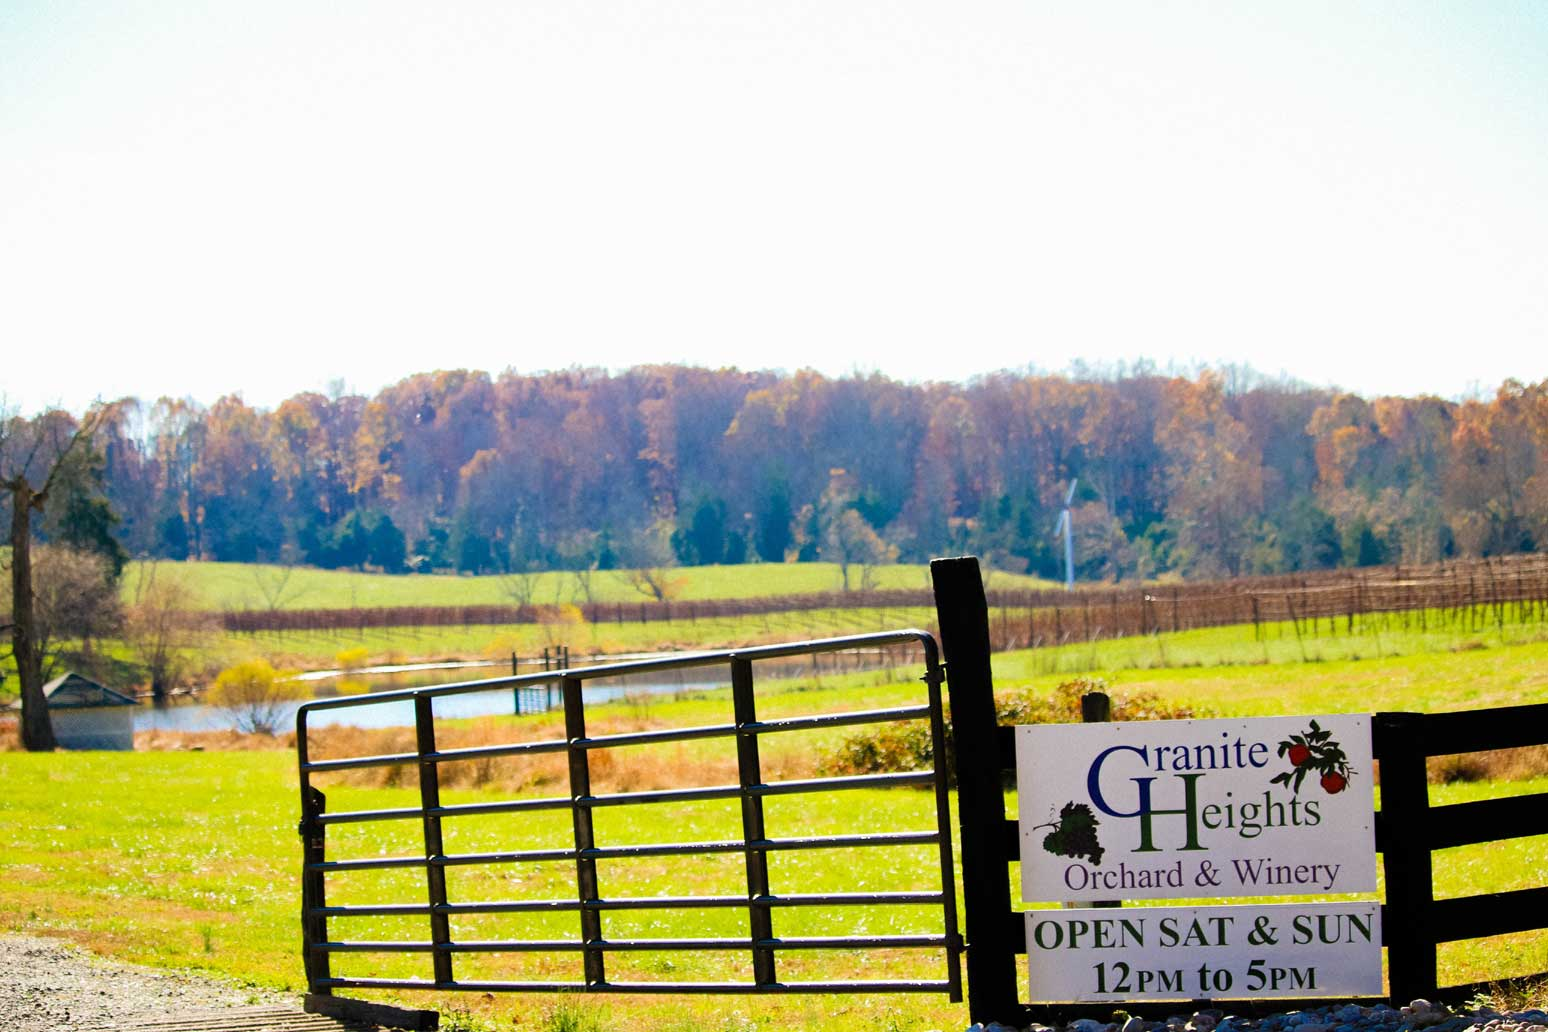 Granite Heights Orchard and Winery in Warrenton, VA